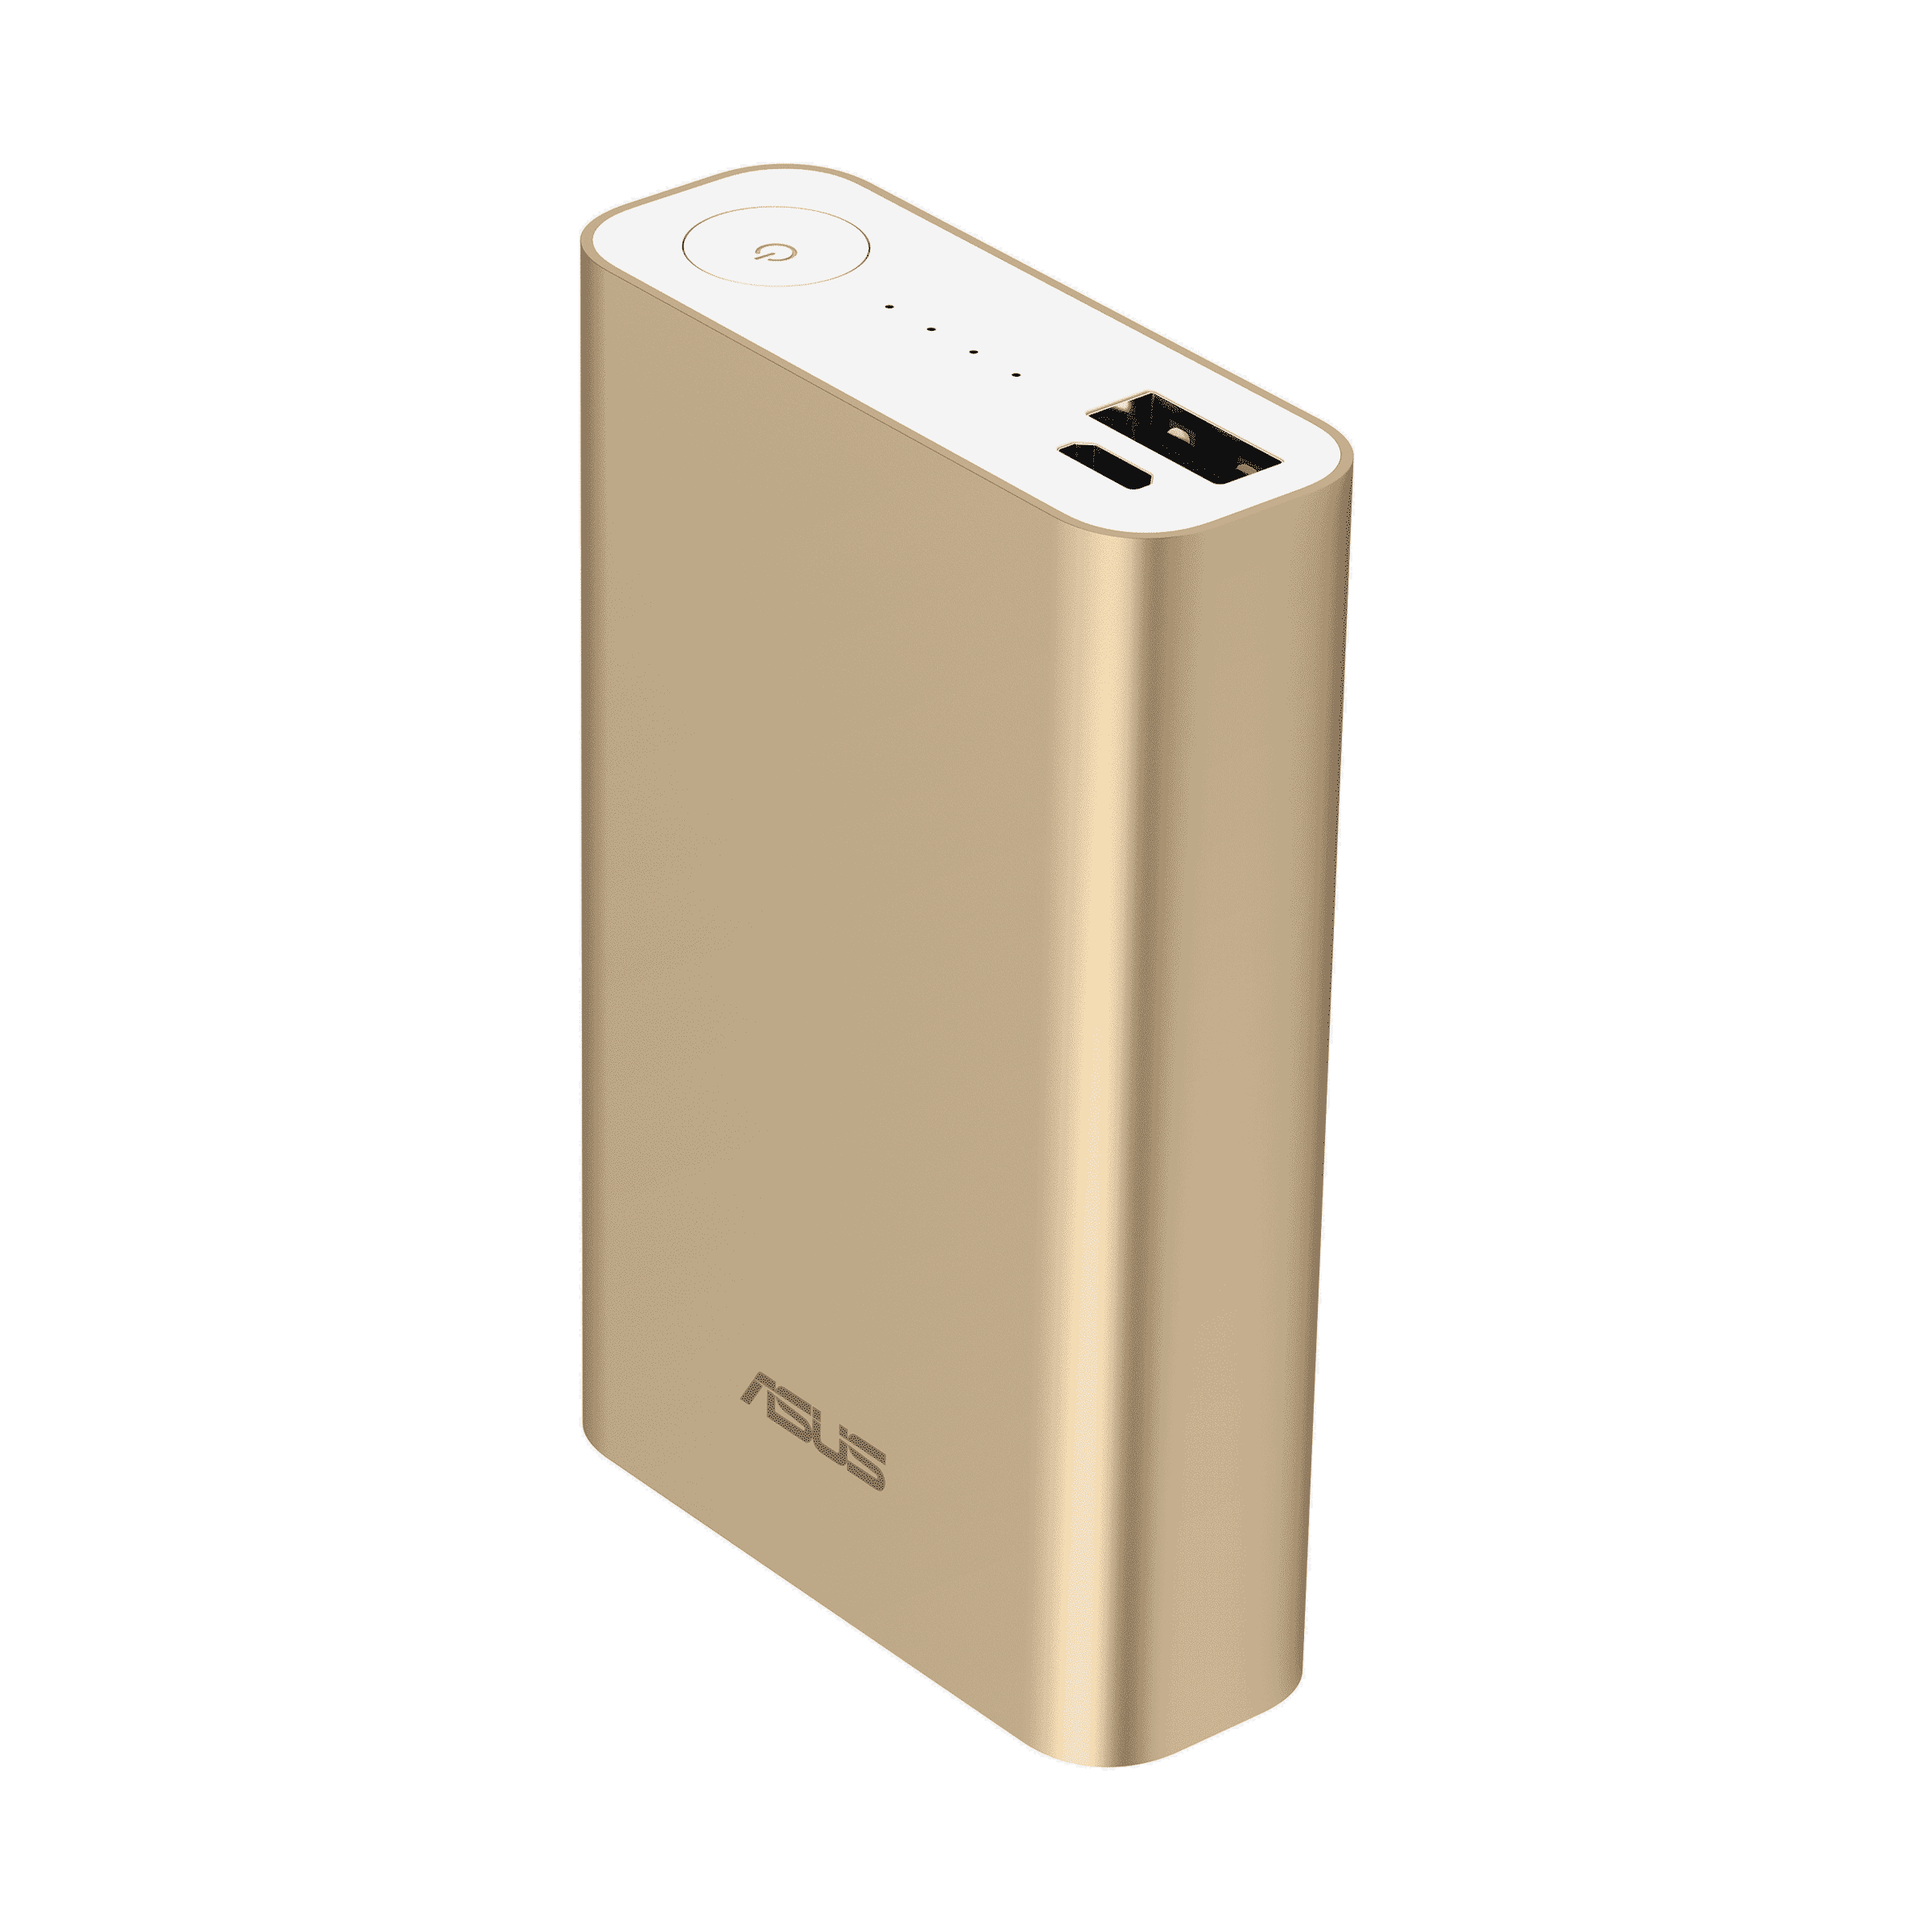 Asus ZenPower Power Bank 10050mAh USB @ 2.4A Gold | Lightweight and Powerful | Credit Card Size